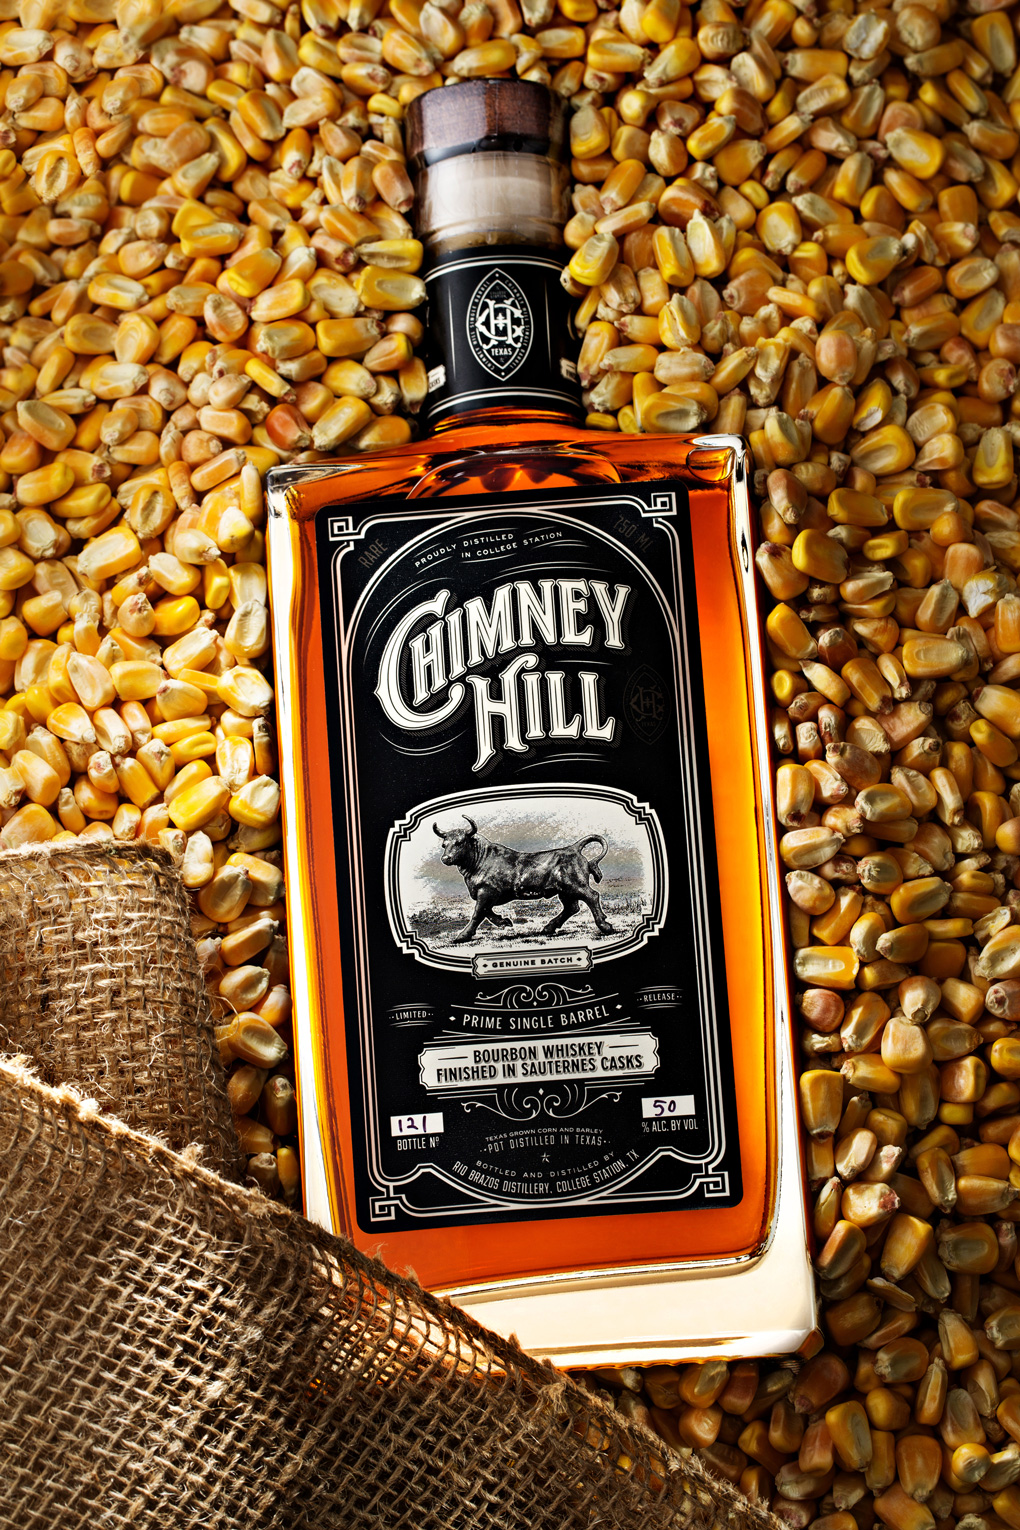 Chimney Hill Prime Single Barrel Bourbon Whiskey